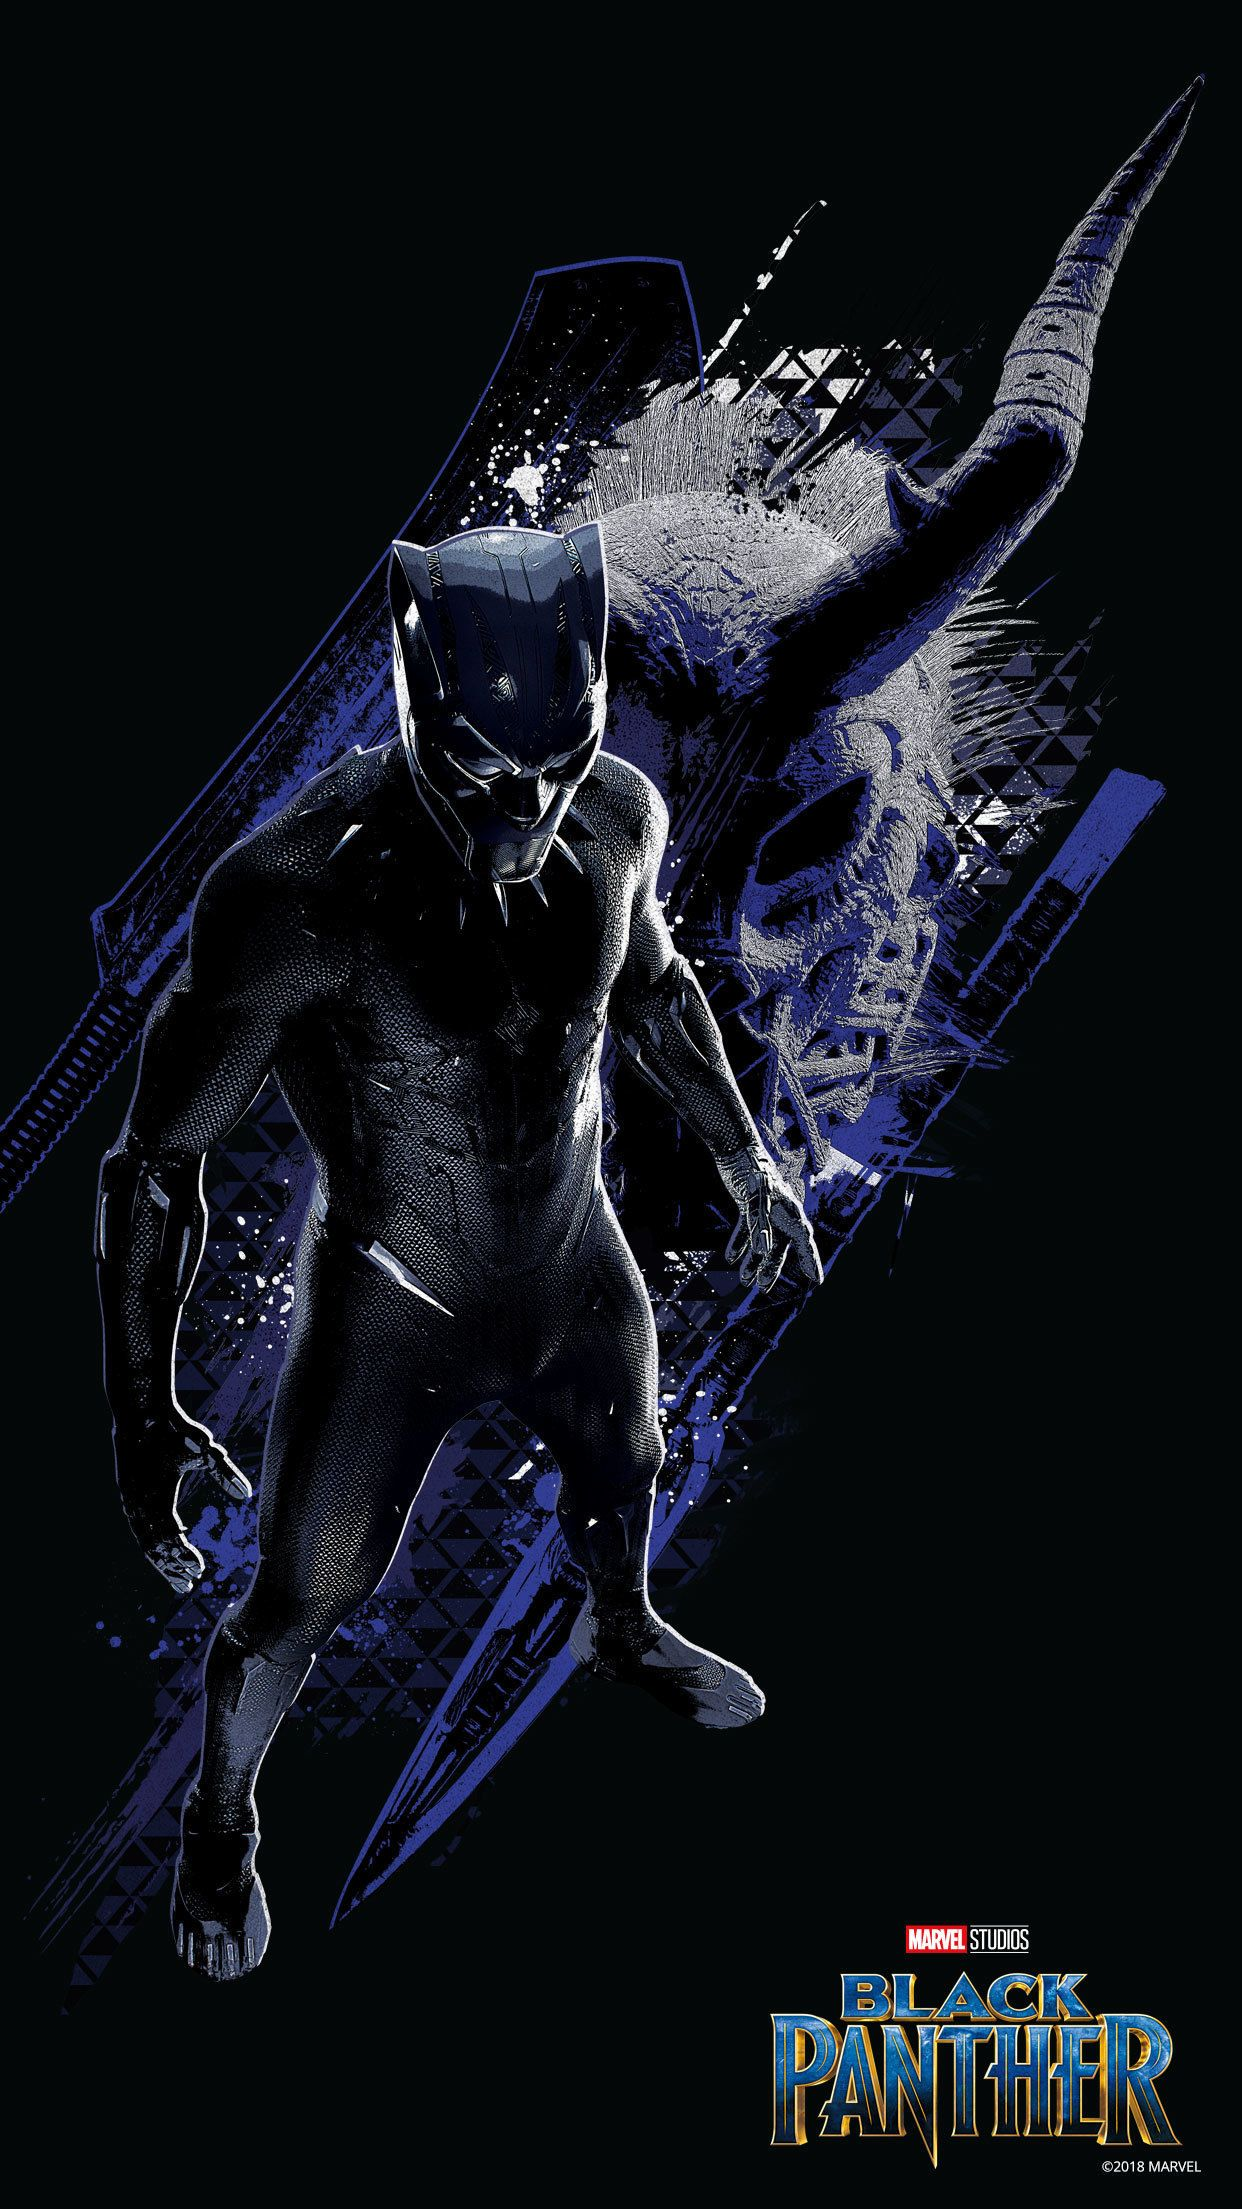 Black Panther Hero Wallpapers - Top Free Black Panther ...